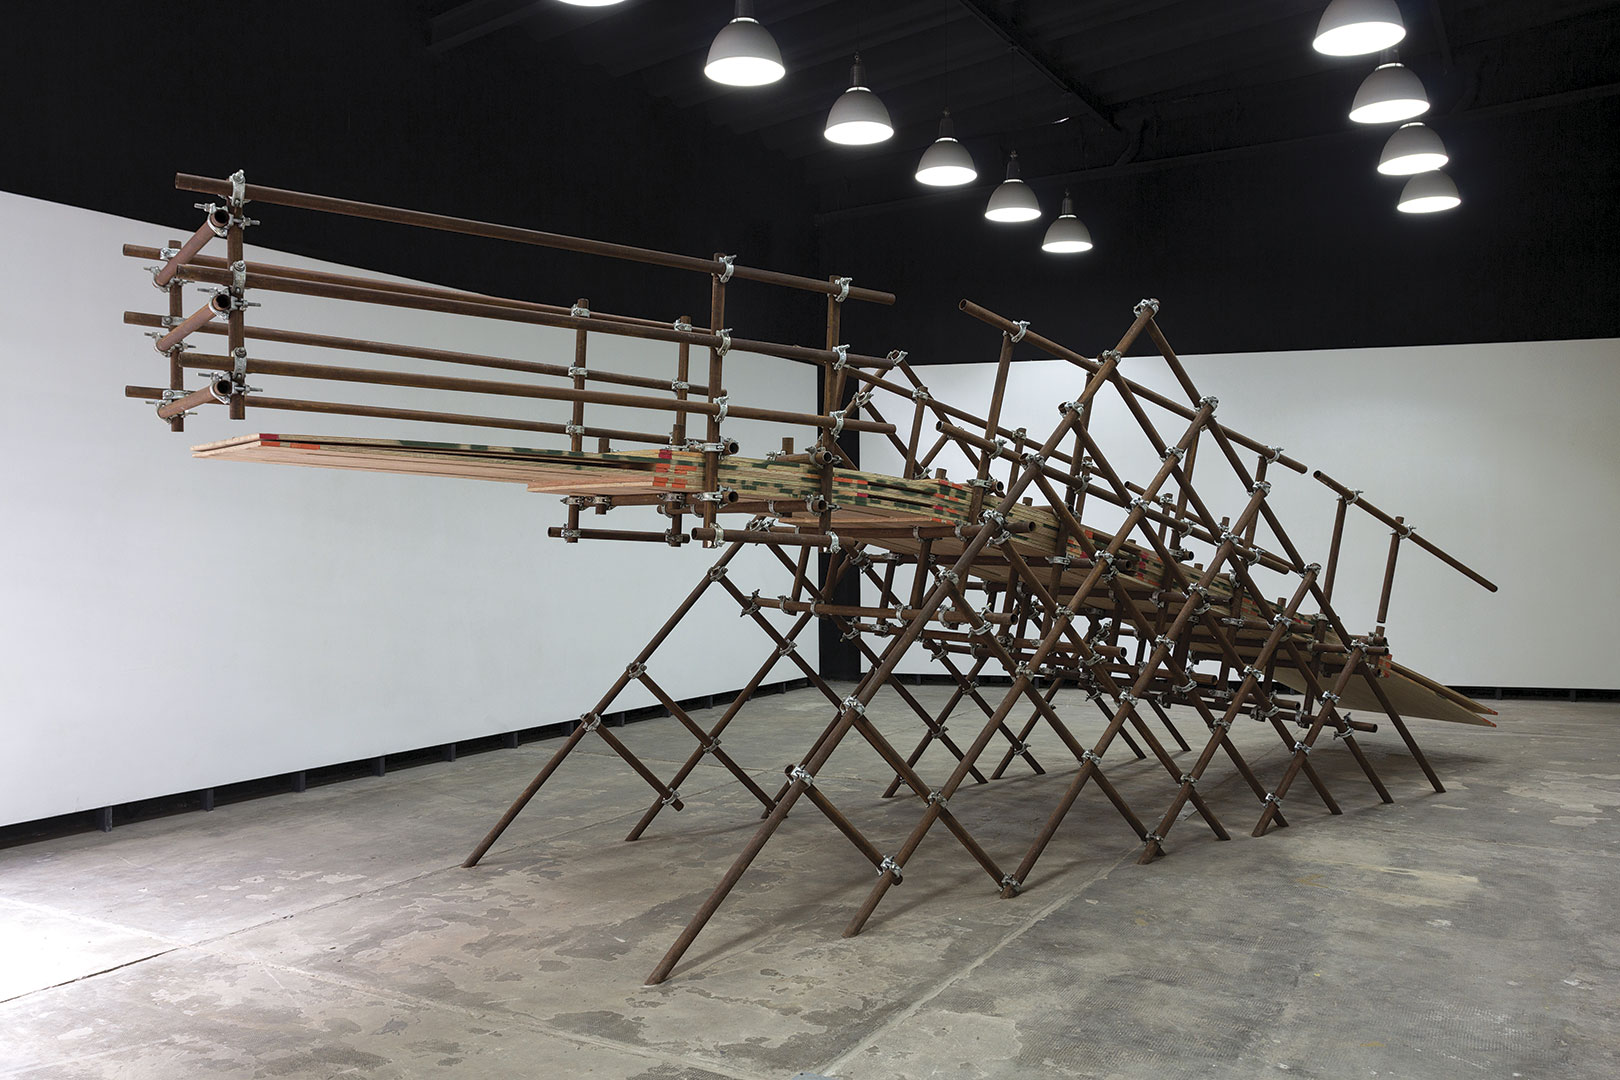 Metasbilad | 2016 | Plywood, iron pipes and scaffolding clamps | 3,00 x 2,00 x 9,00 m